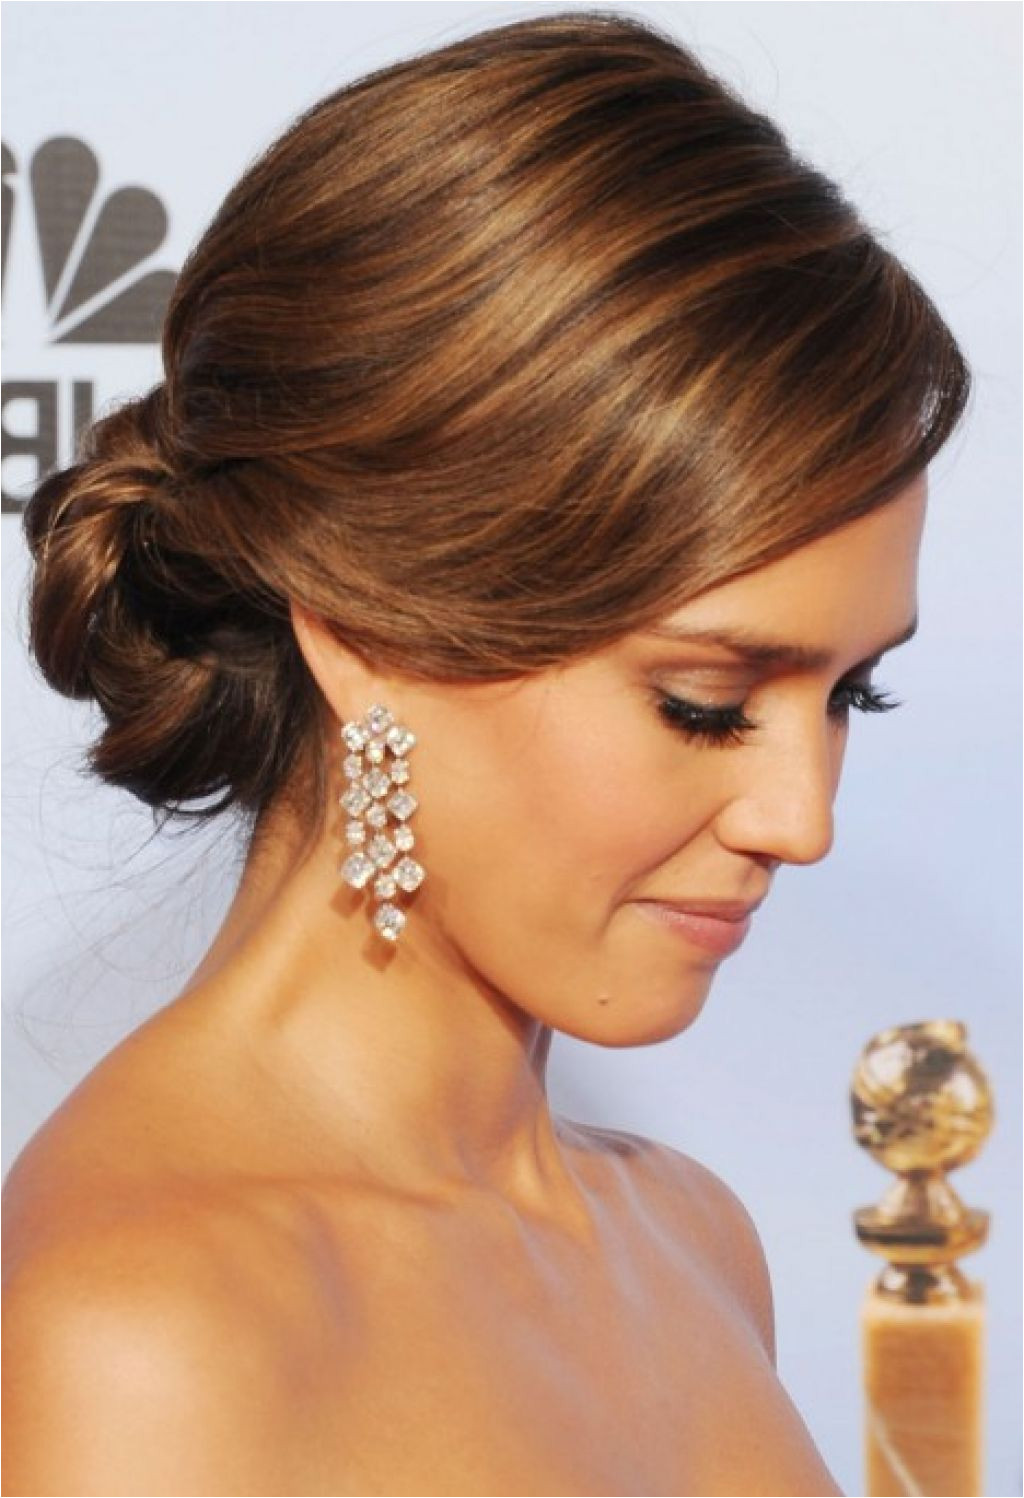 Wedding Hairstyles Ideas Side Ponytail Formal Straight Low Updo Wedding Guest…